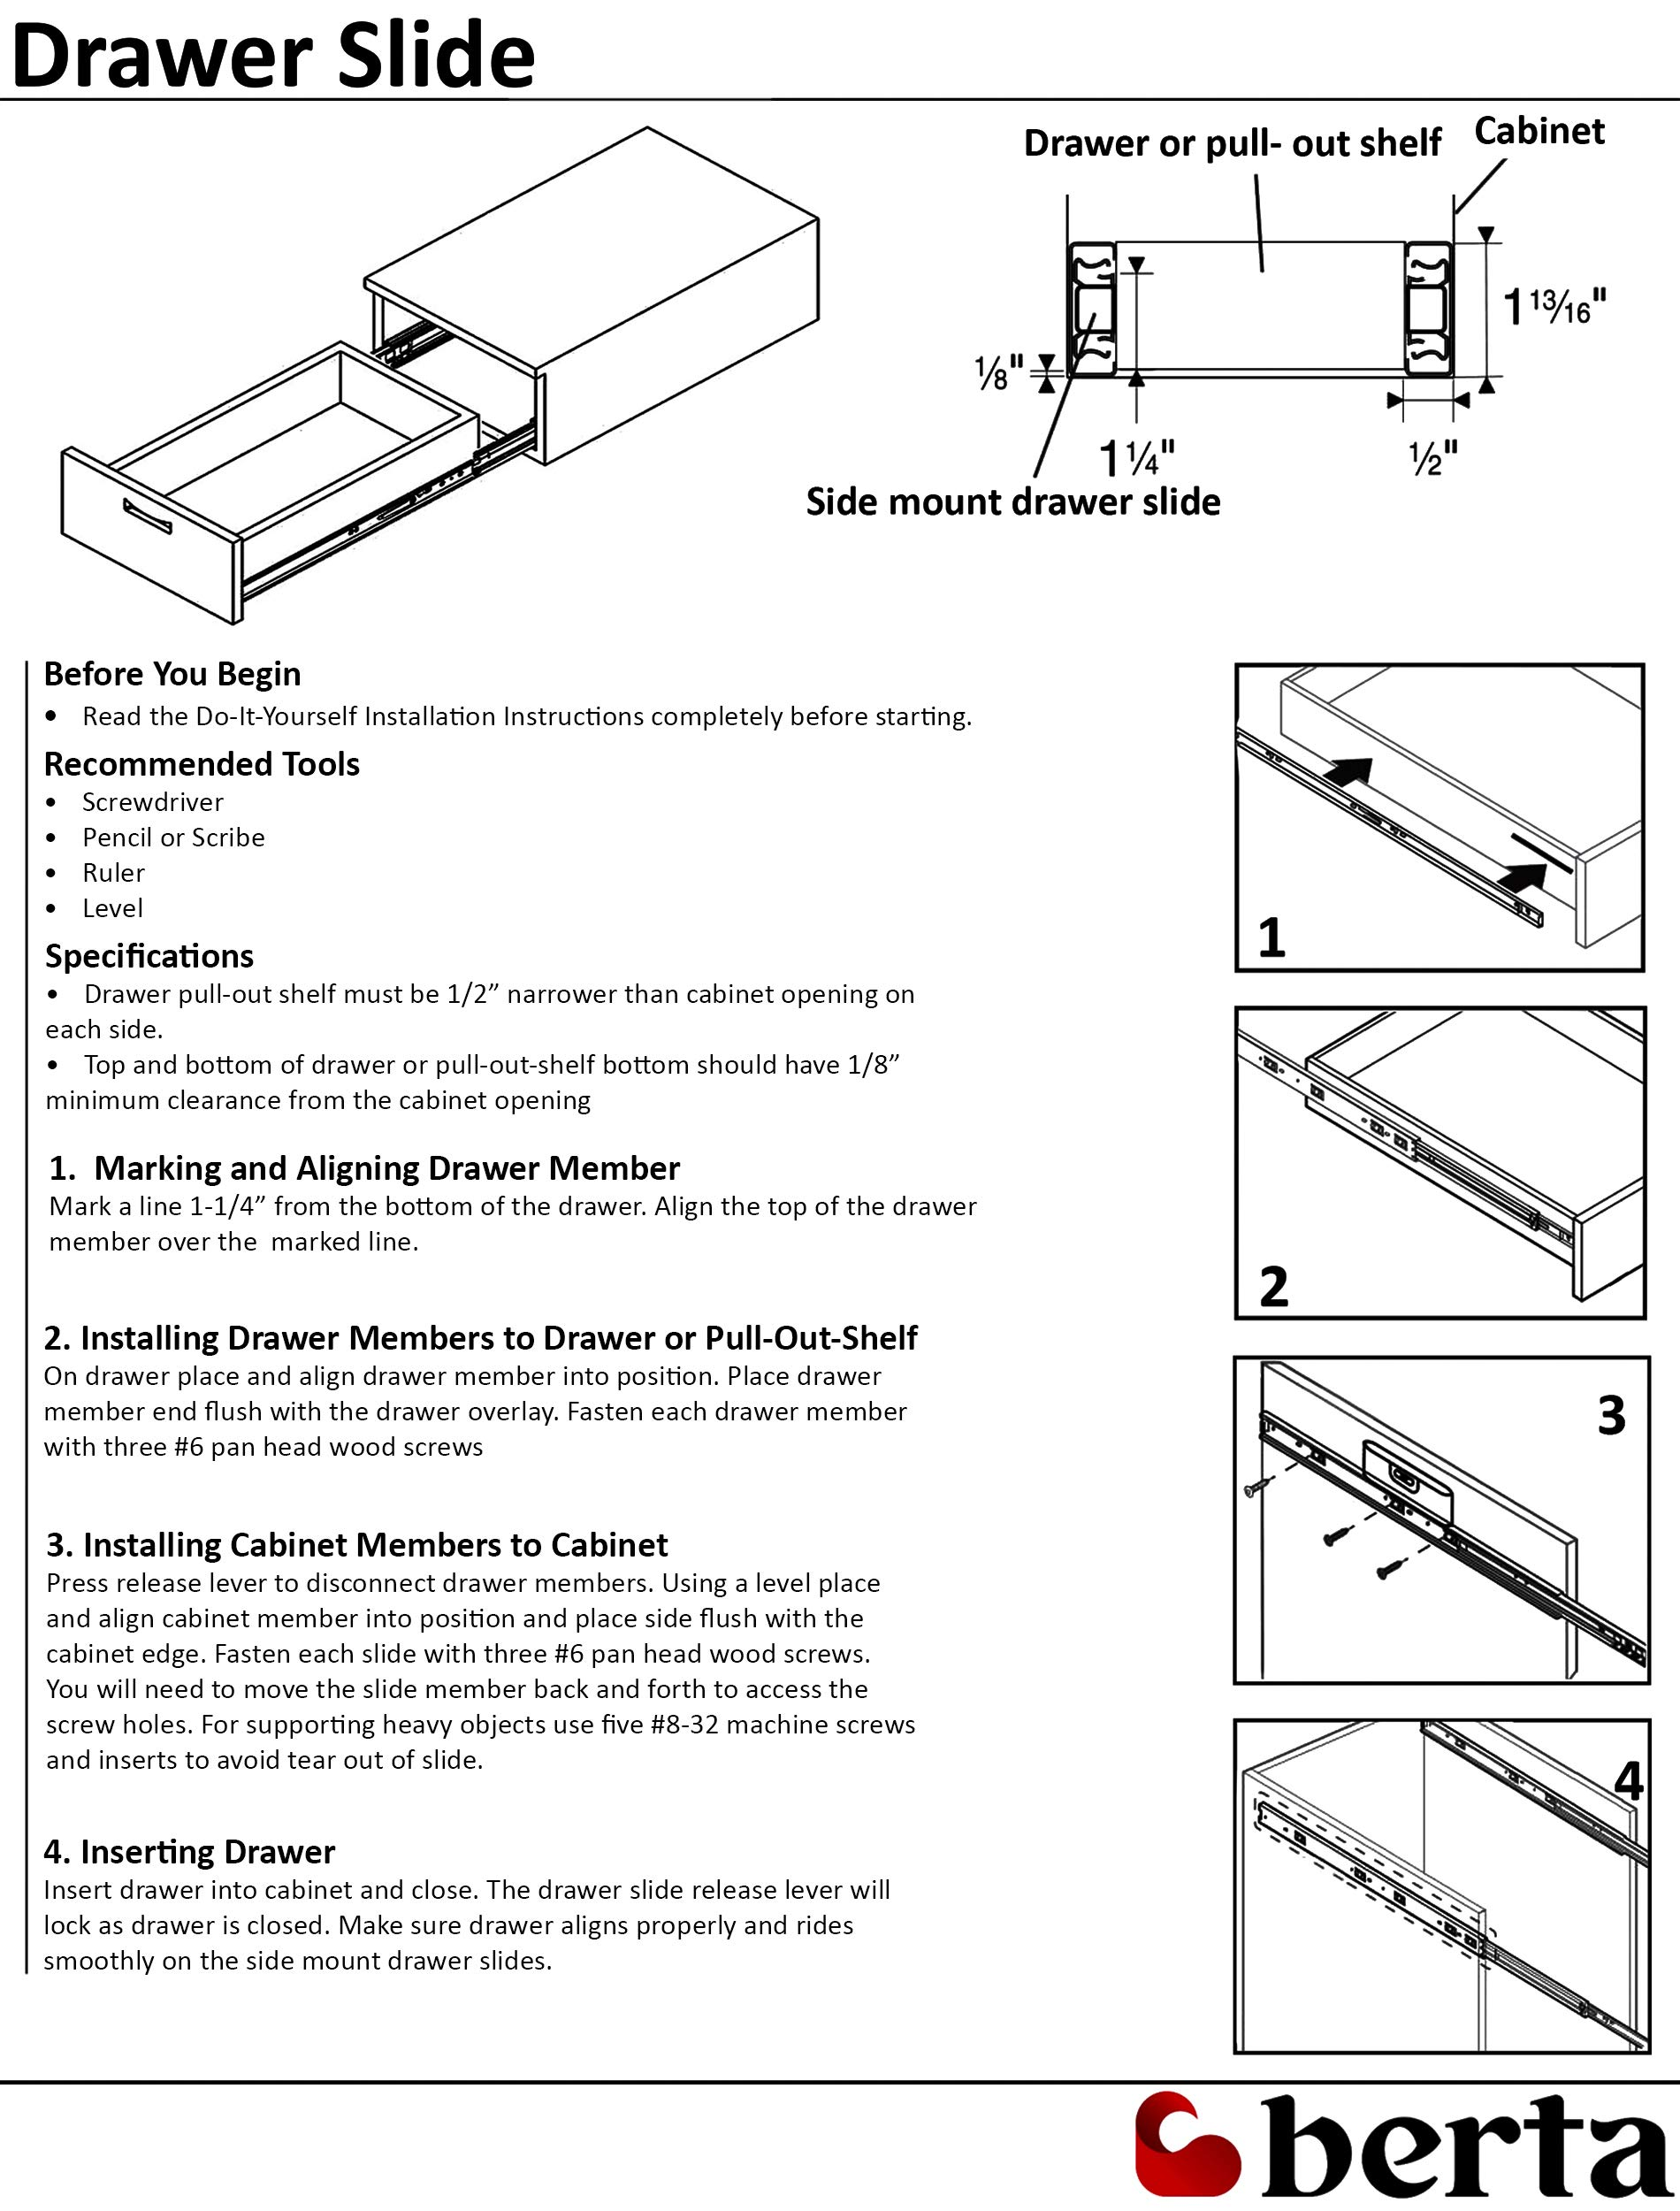 10 Pack Berta Full Extension Soft/Self Close Ball Bearing Side Mount Drawer Slides 16-Inch 100Lb Load Rating (10 Pairs) by Berta (Image #5)